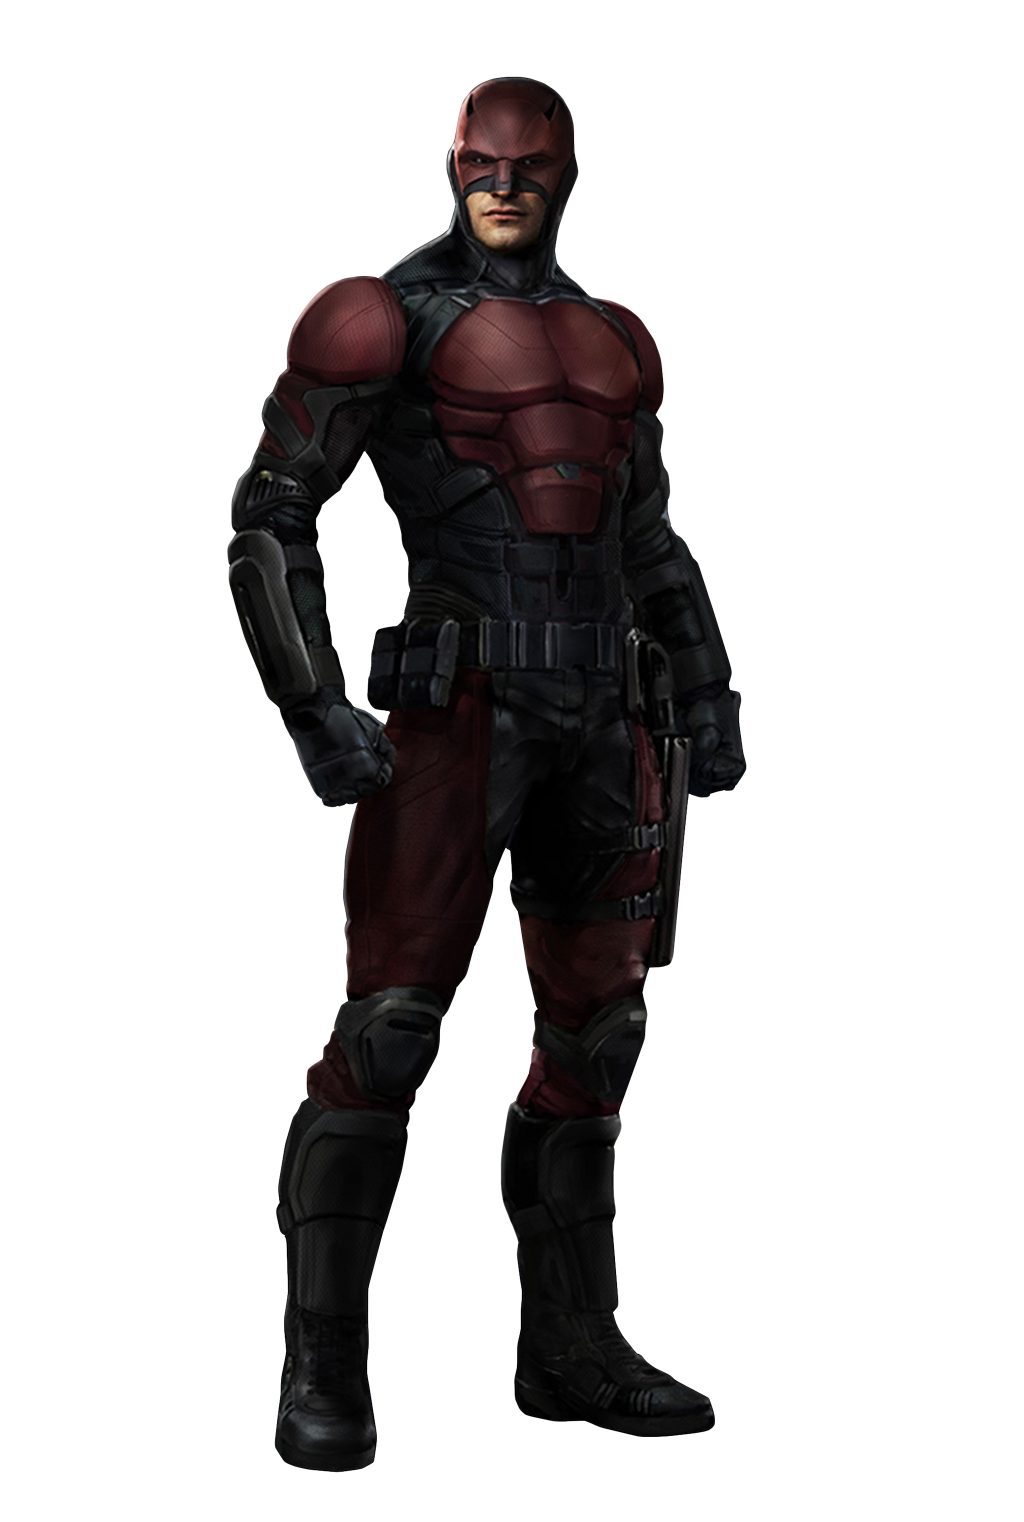 clip free download Daredevil transparent. Concept by trickarrowdesigns on.